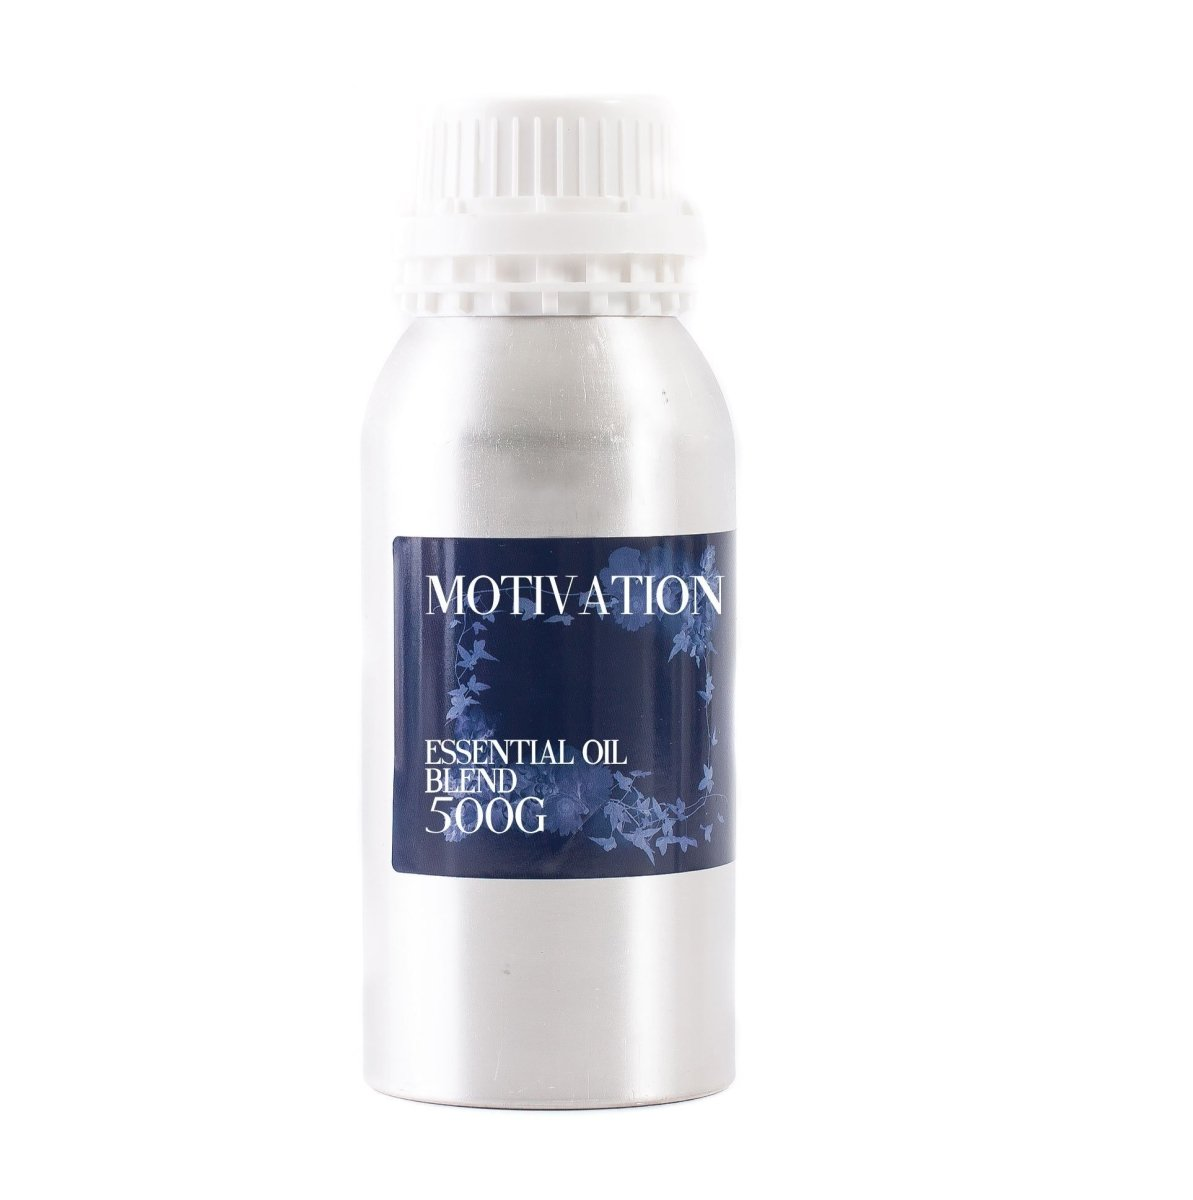 Motivation - Essential Oil Blends - Mystic Moments UK